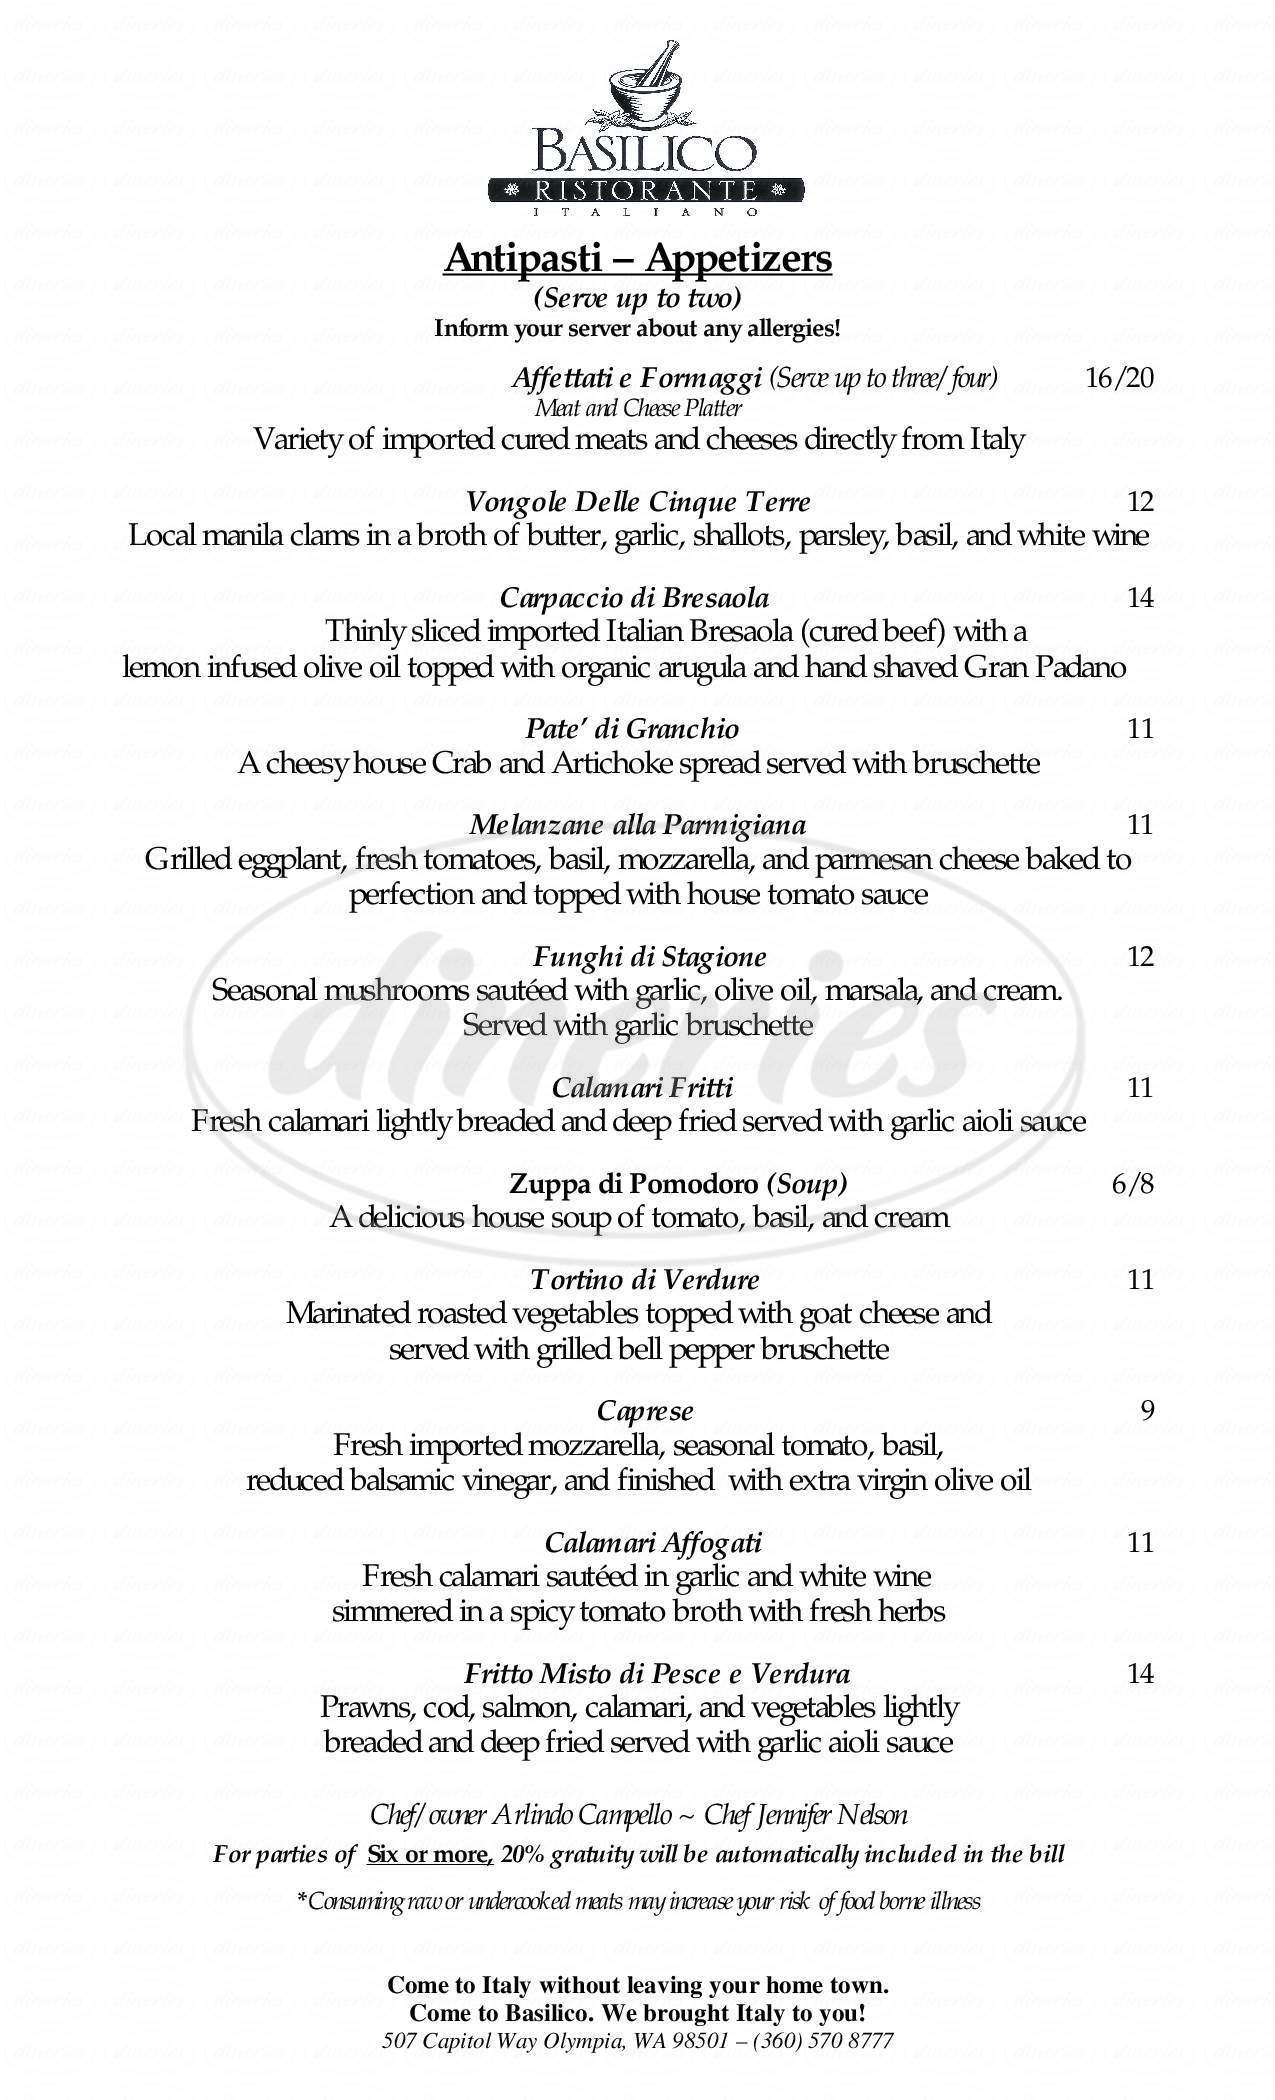 menu for Basilico Ristorante Italiano